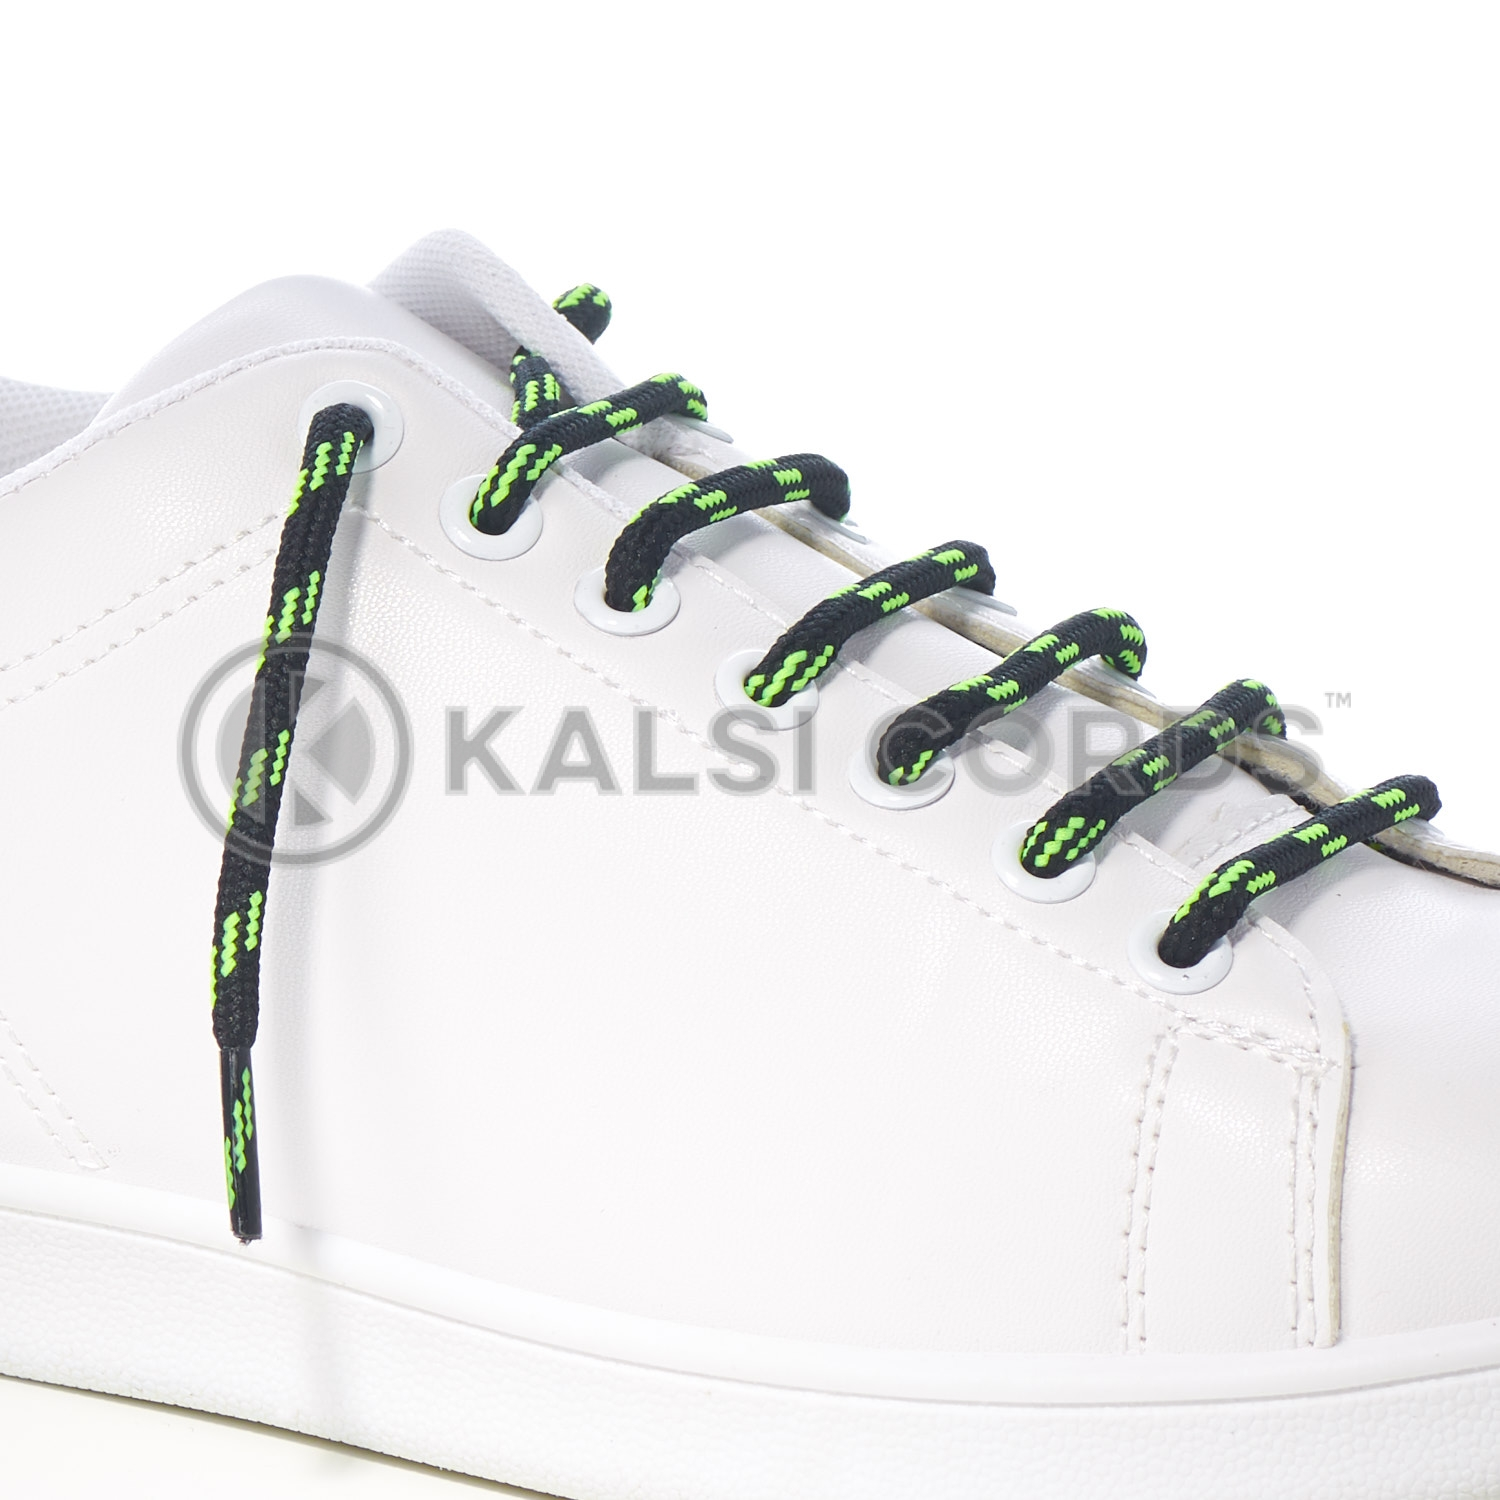 T621 5mm Round Cord Shoe Lace Black Fluorescent Lime Green 4 Fleck Kids Trainers Adults Hiking Walking Boots Kalsi Cords